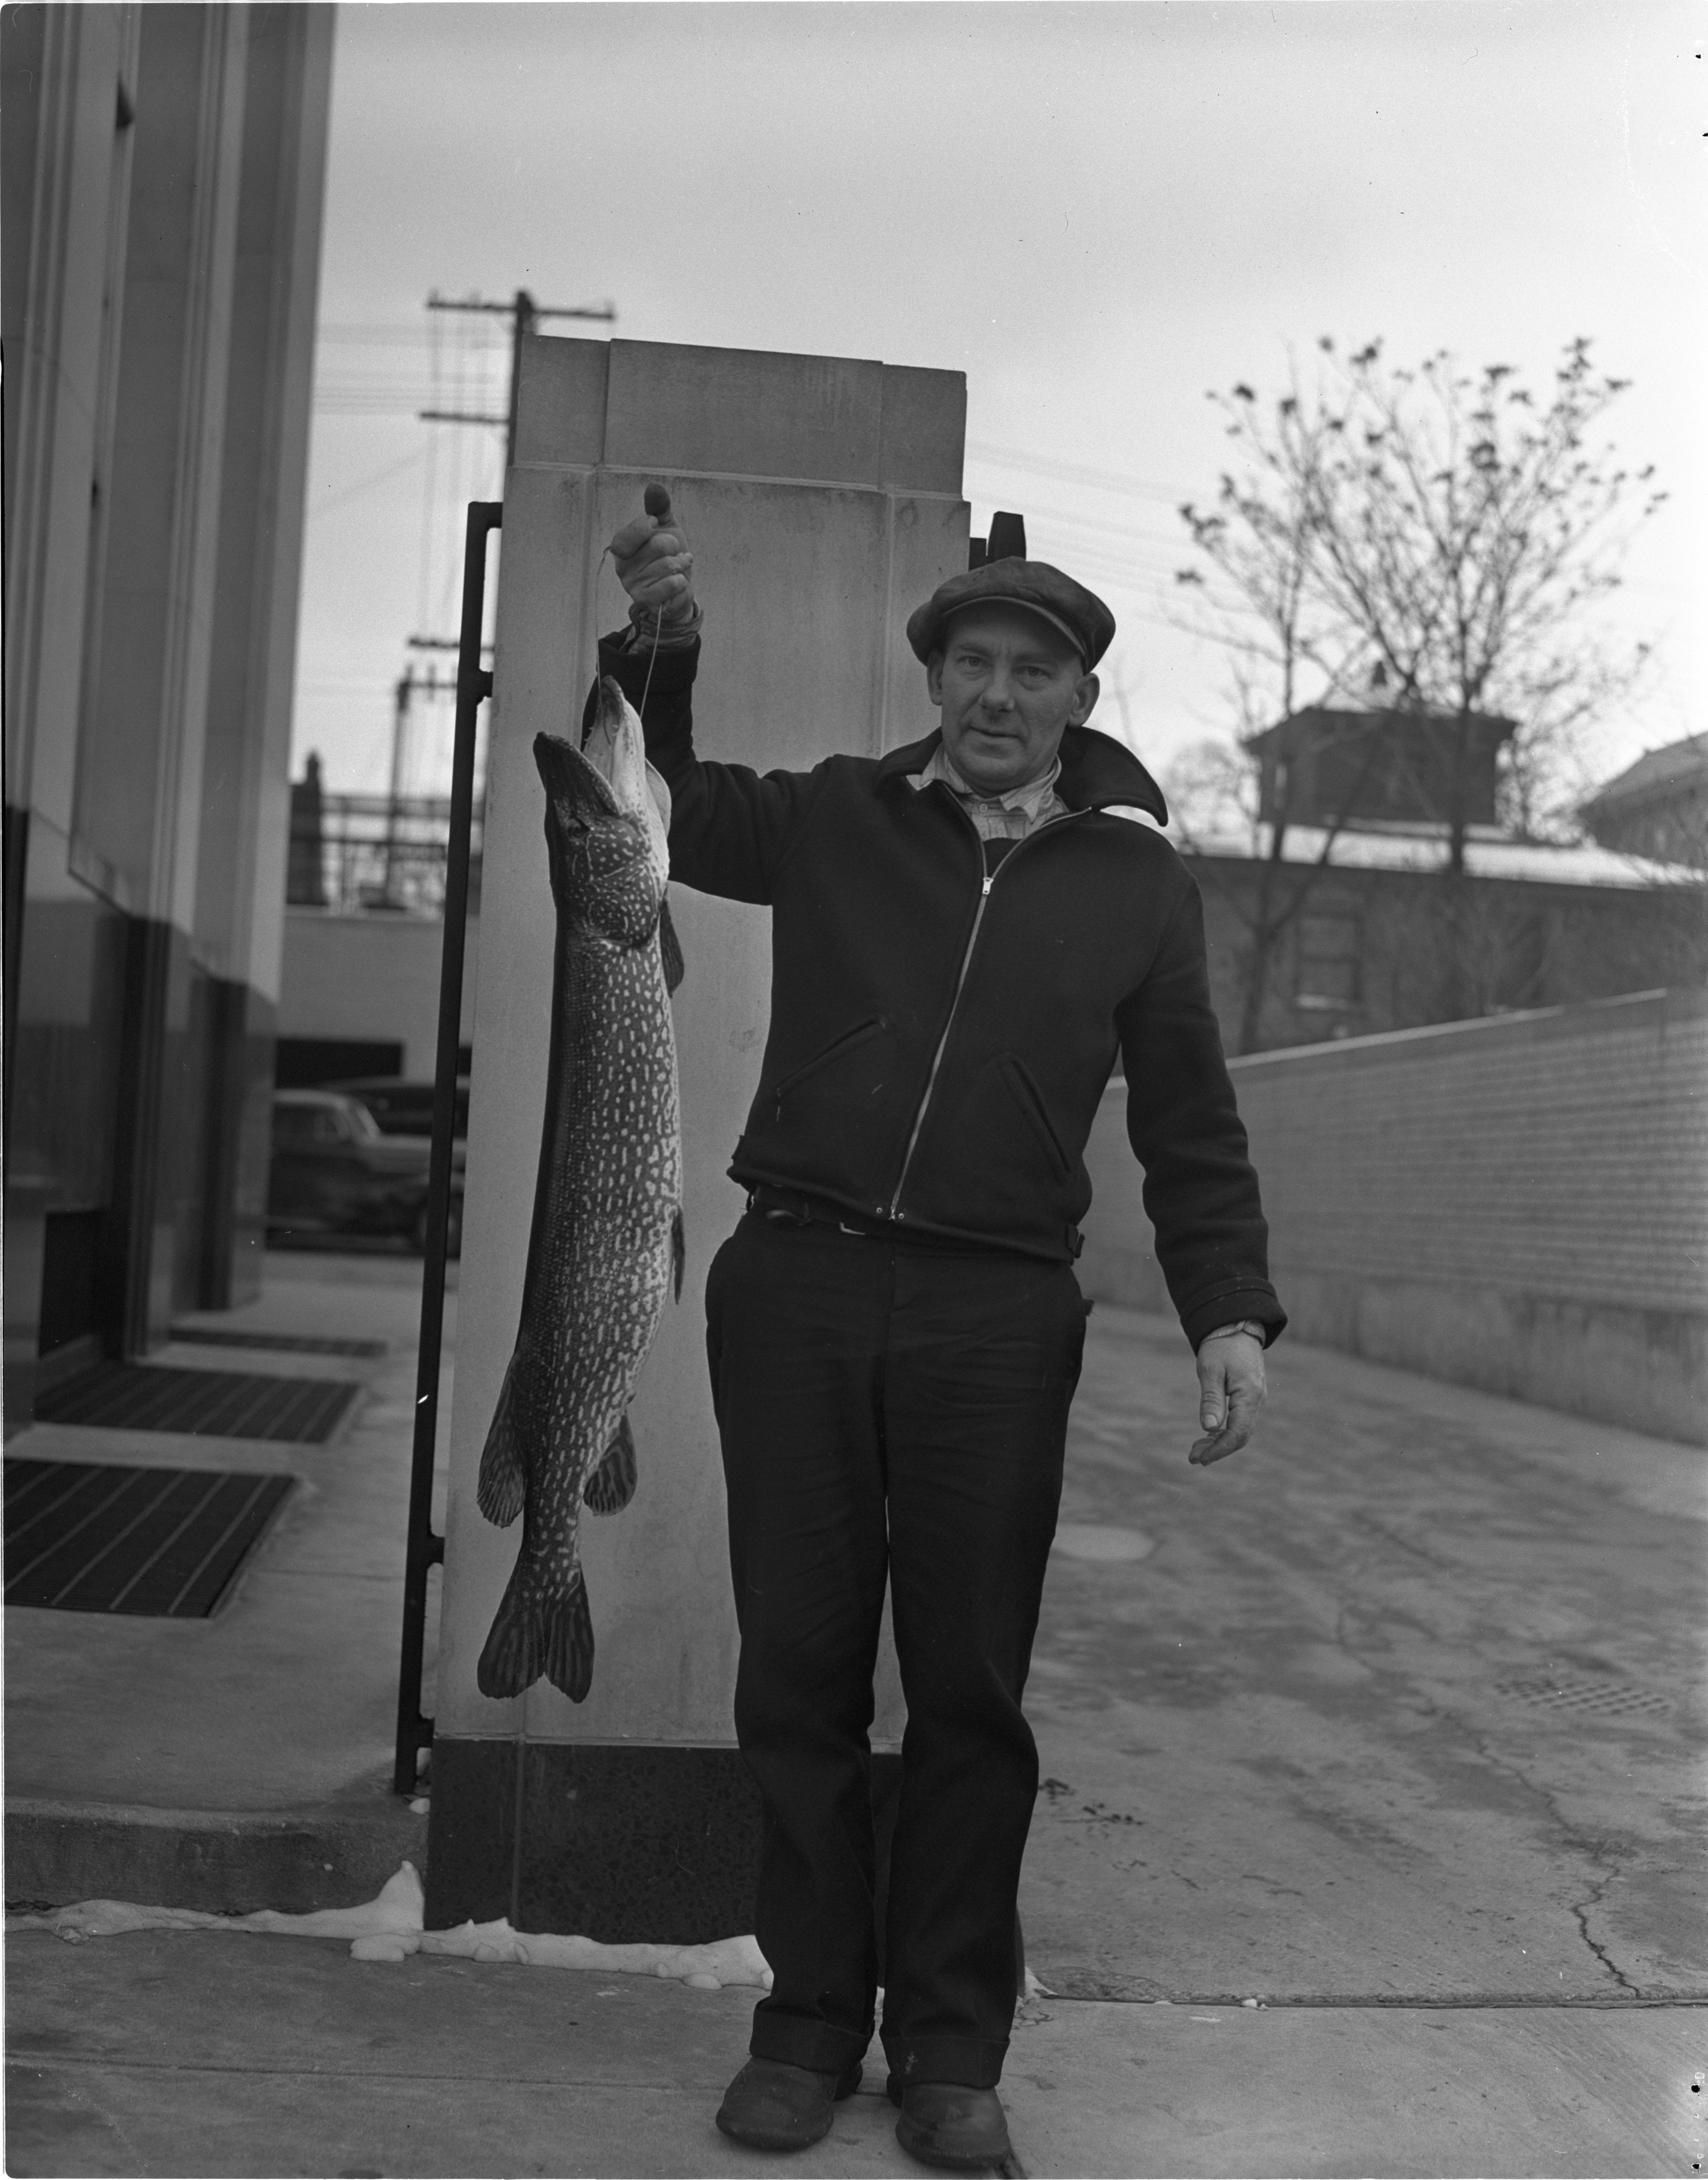 Emerson Shall Displays The 17 Pound Pike He Speared In Base Lake, January 1941 image